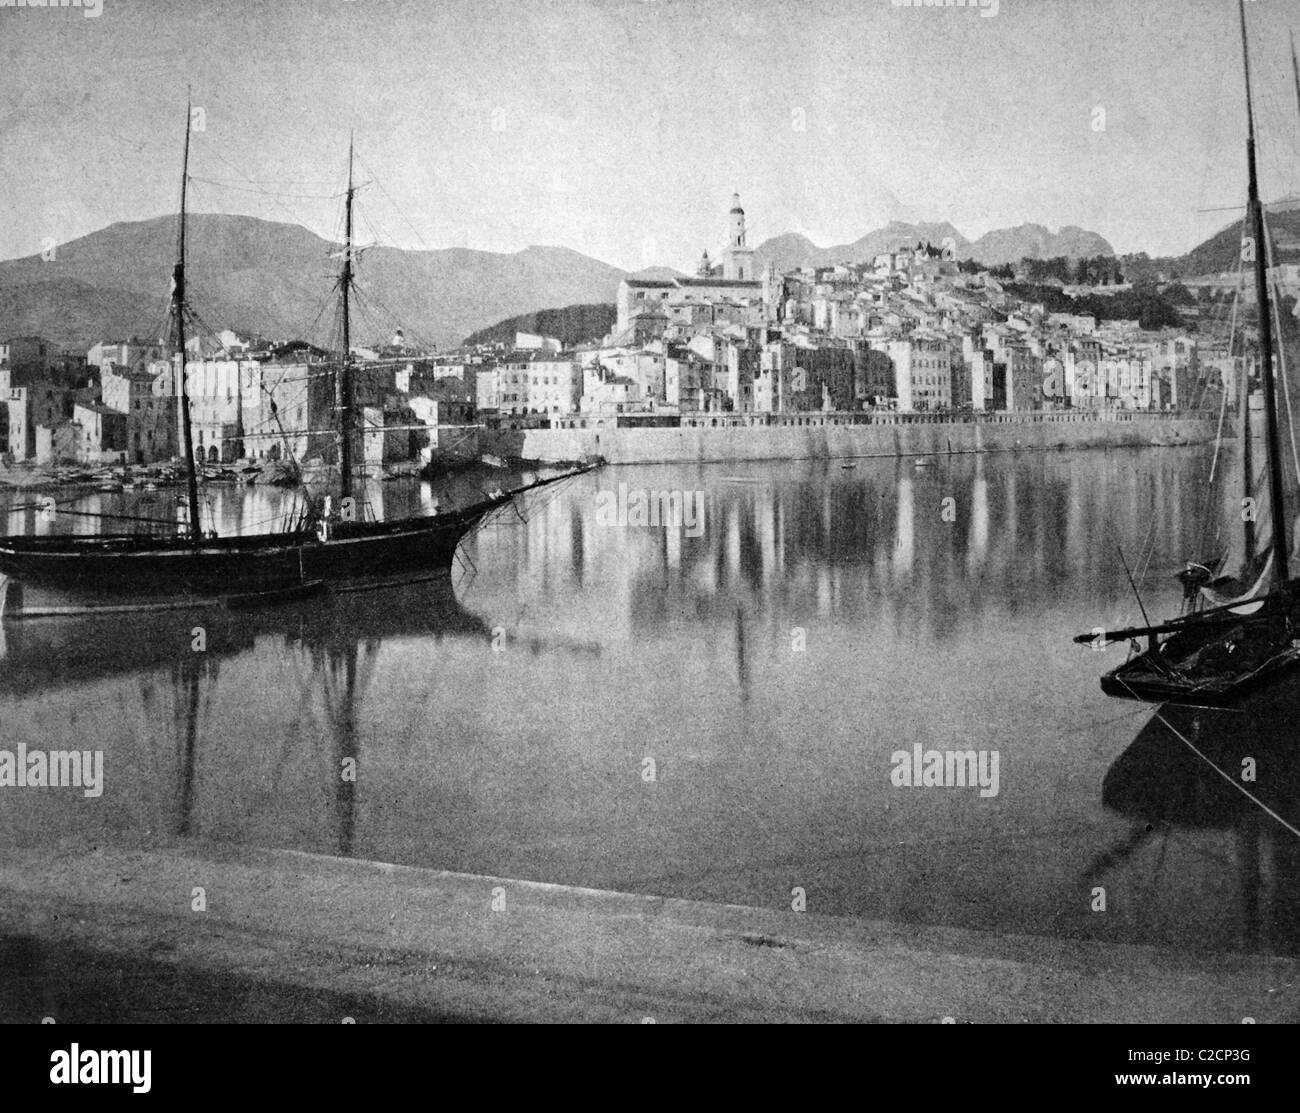 One of the first autotypes of Menton, France, historical photograph, 1884 - Stock Image